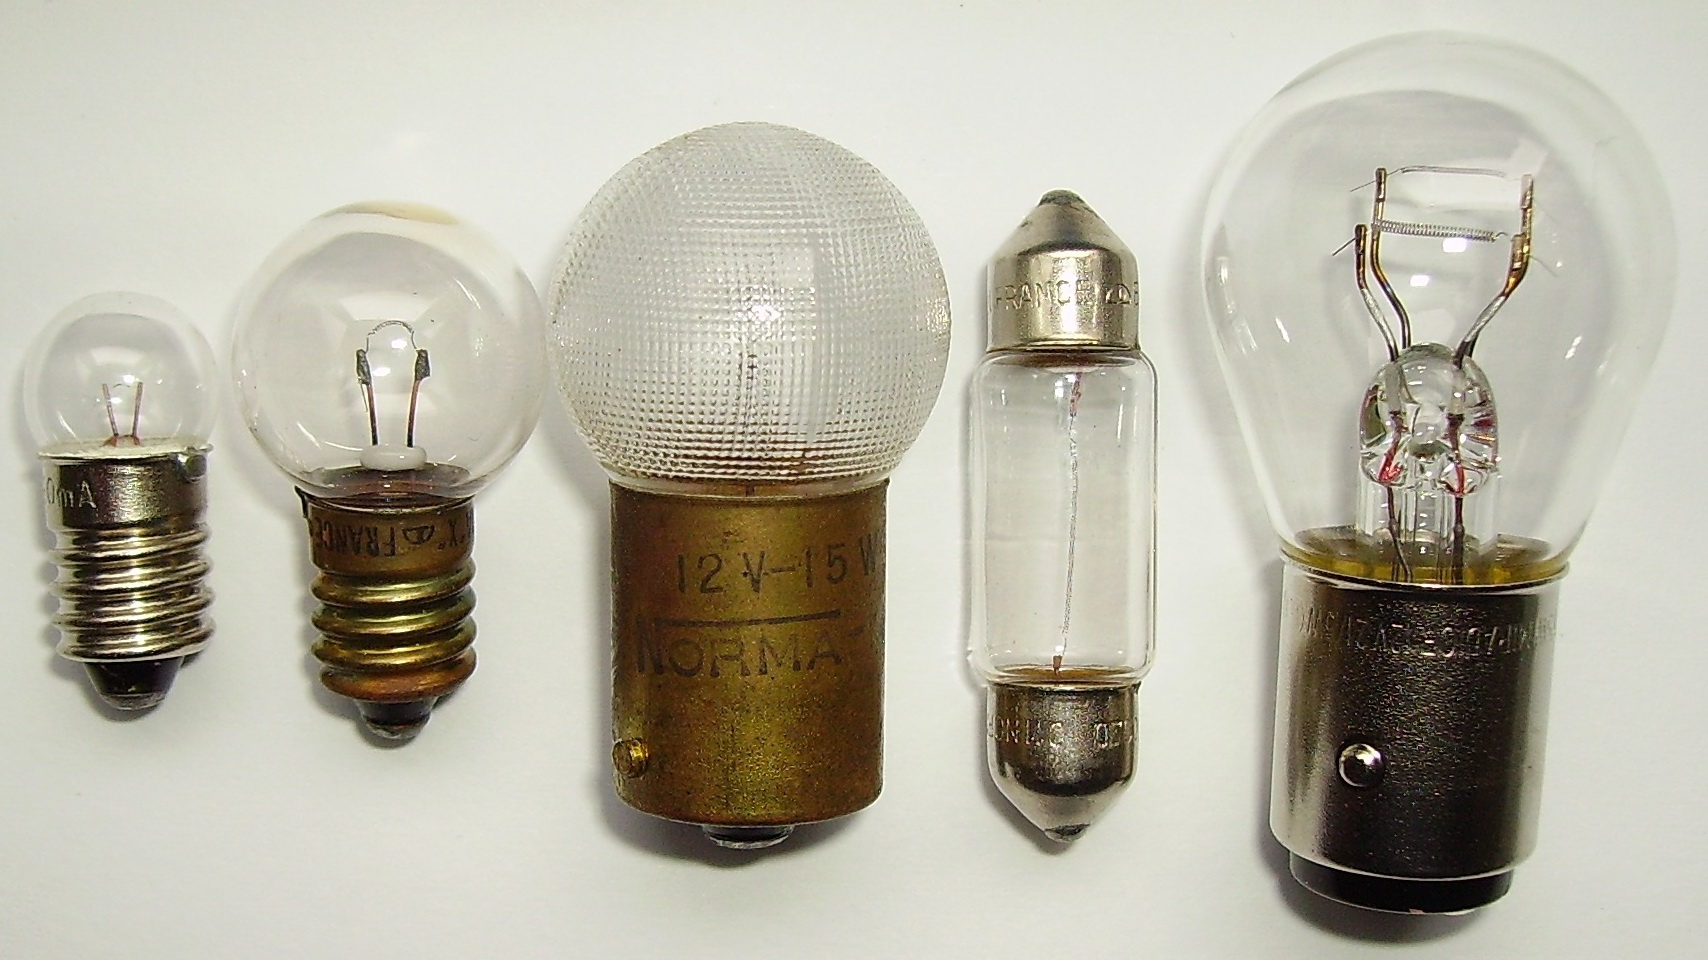 FileLow voltage light bulbs.jpg & File:Low voltage light bulbs.jpg - Wikimedia Commons azcodes.com